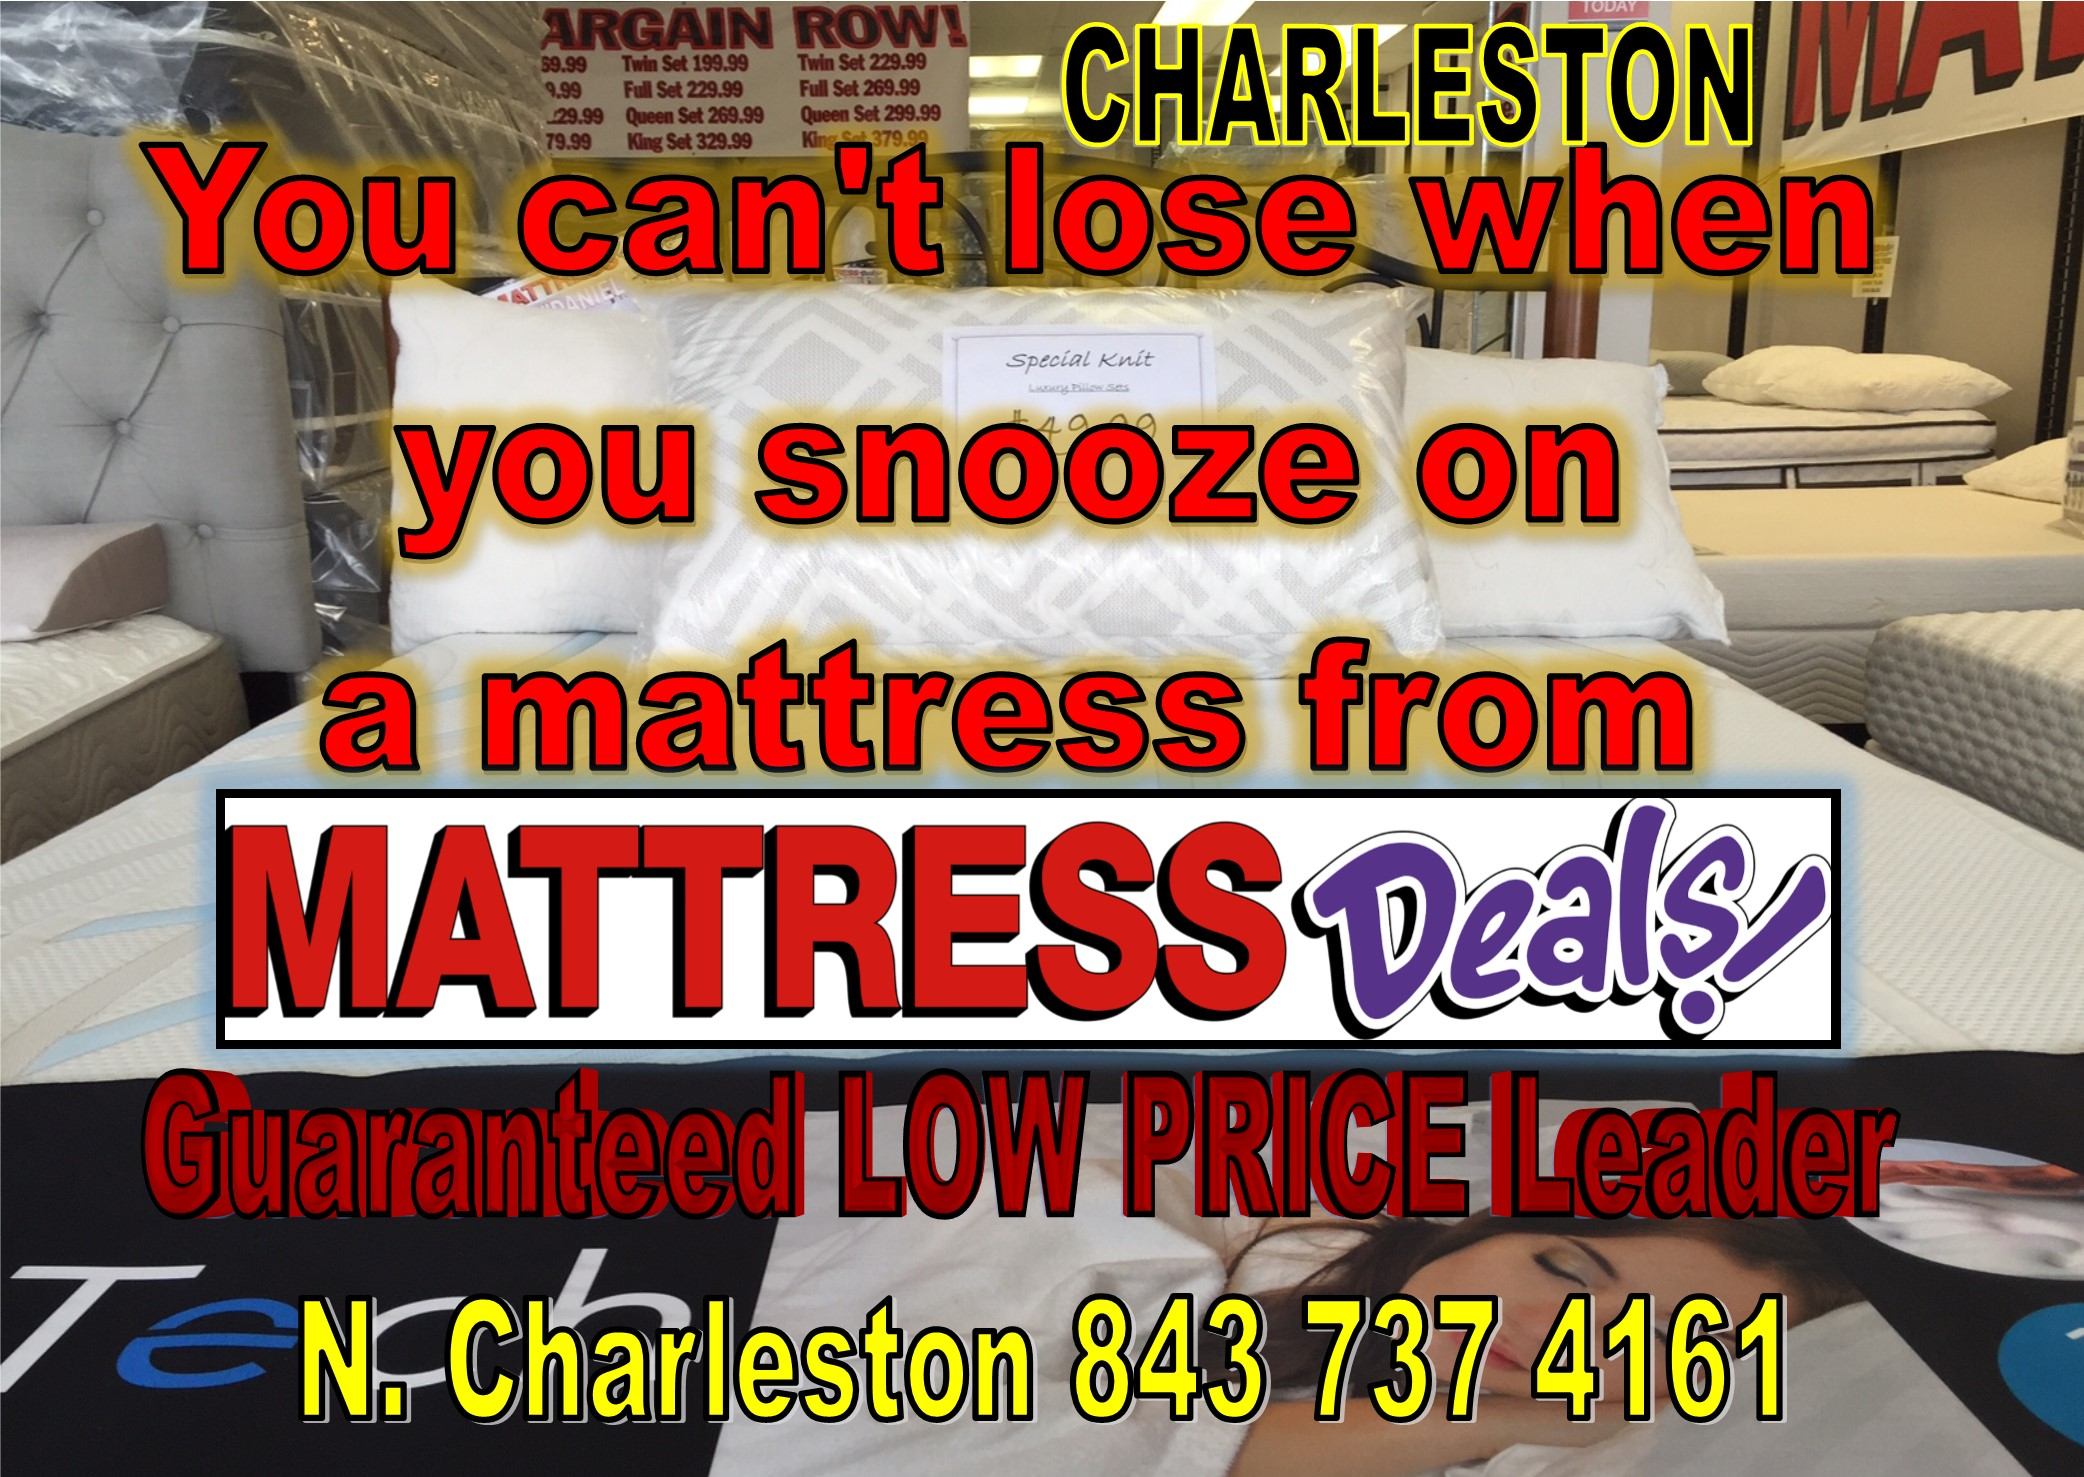 Mattress Deals image 89